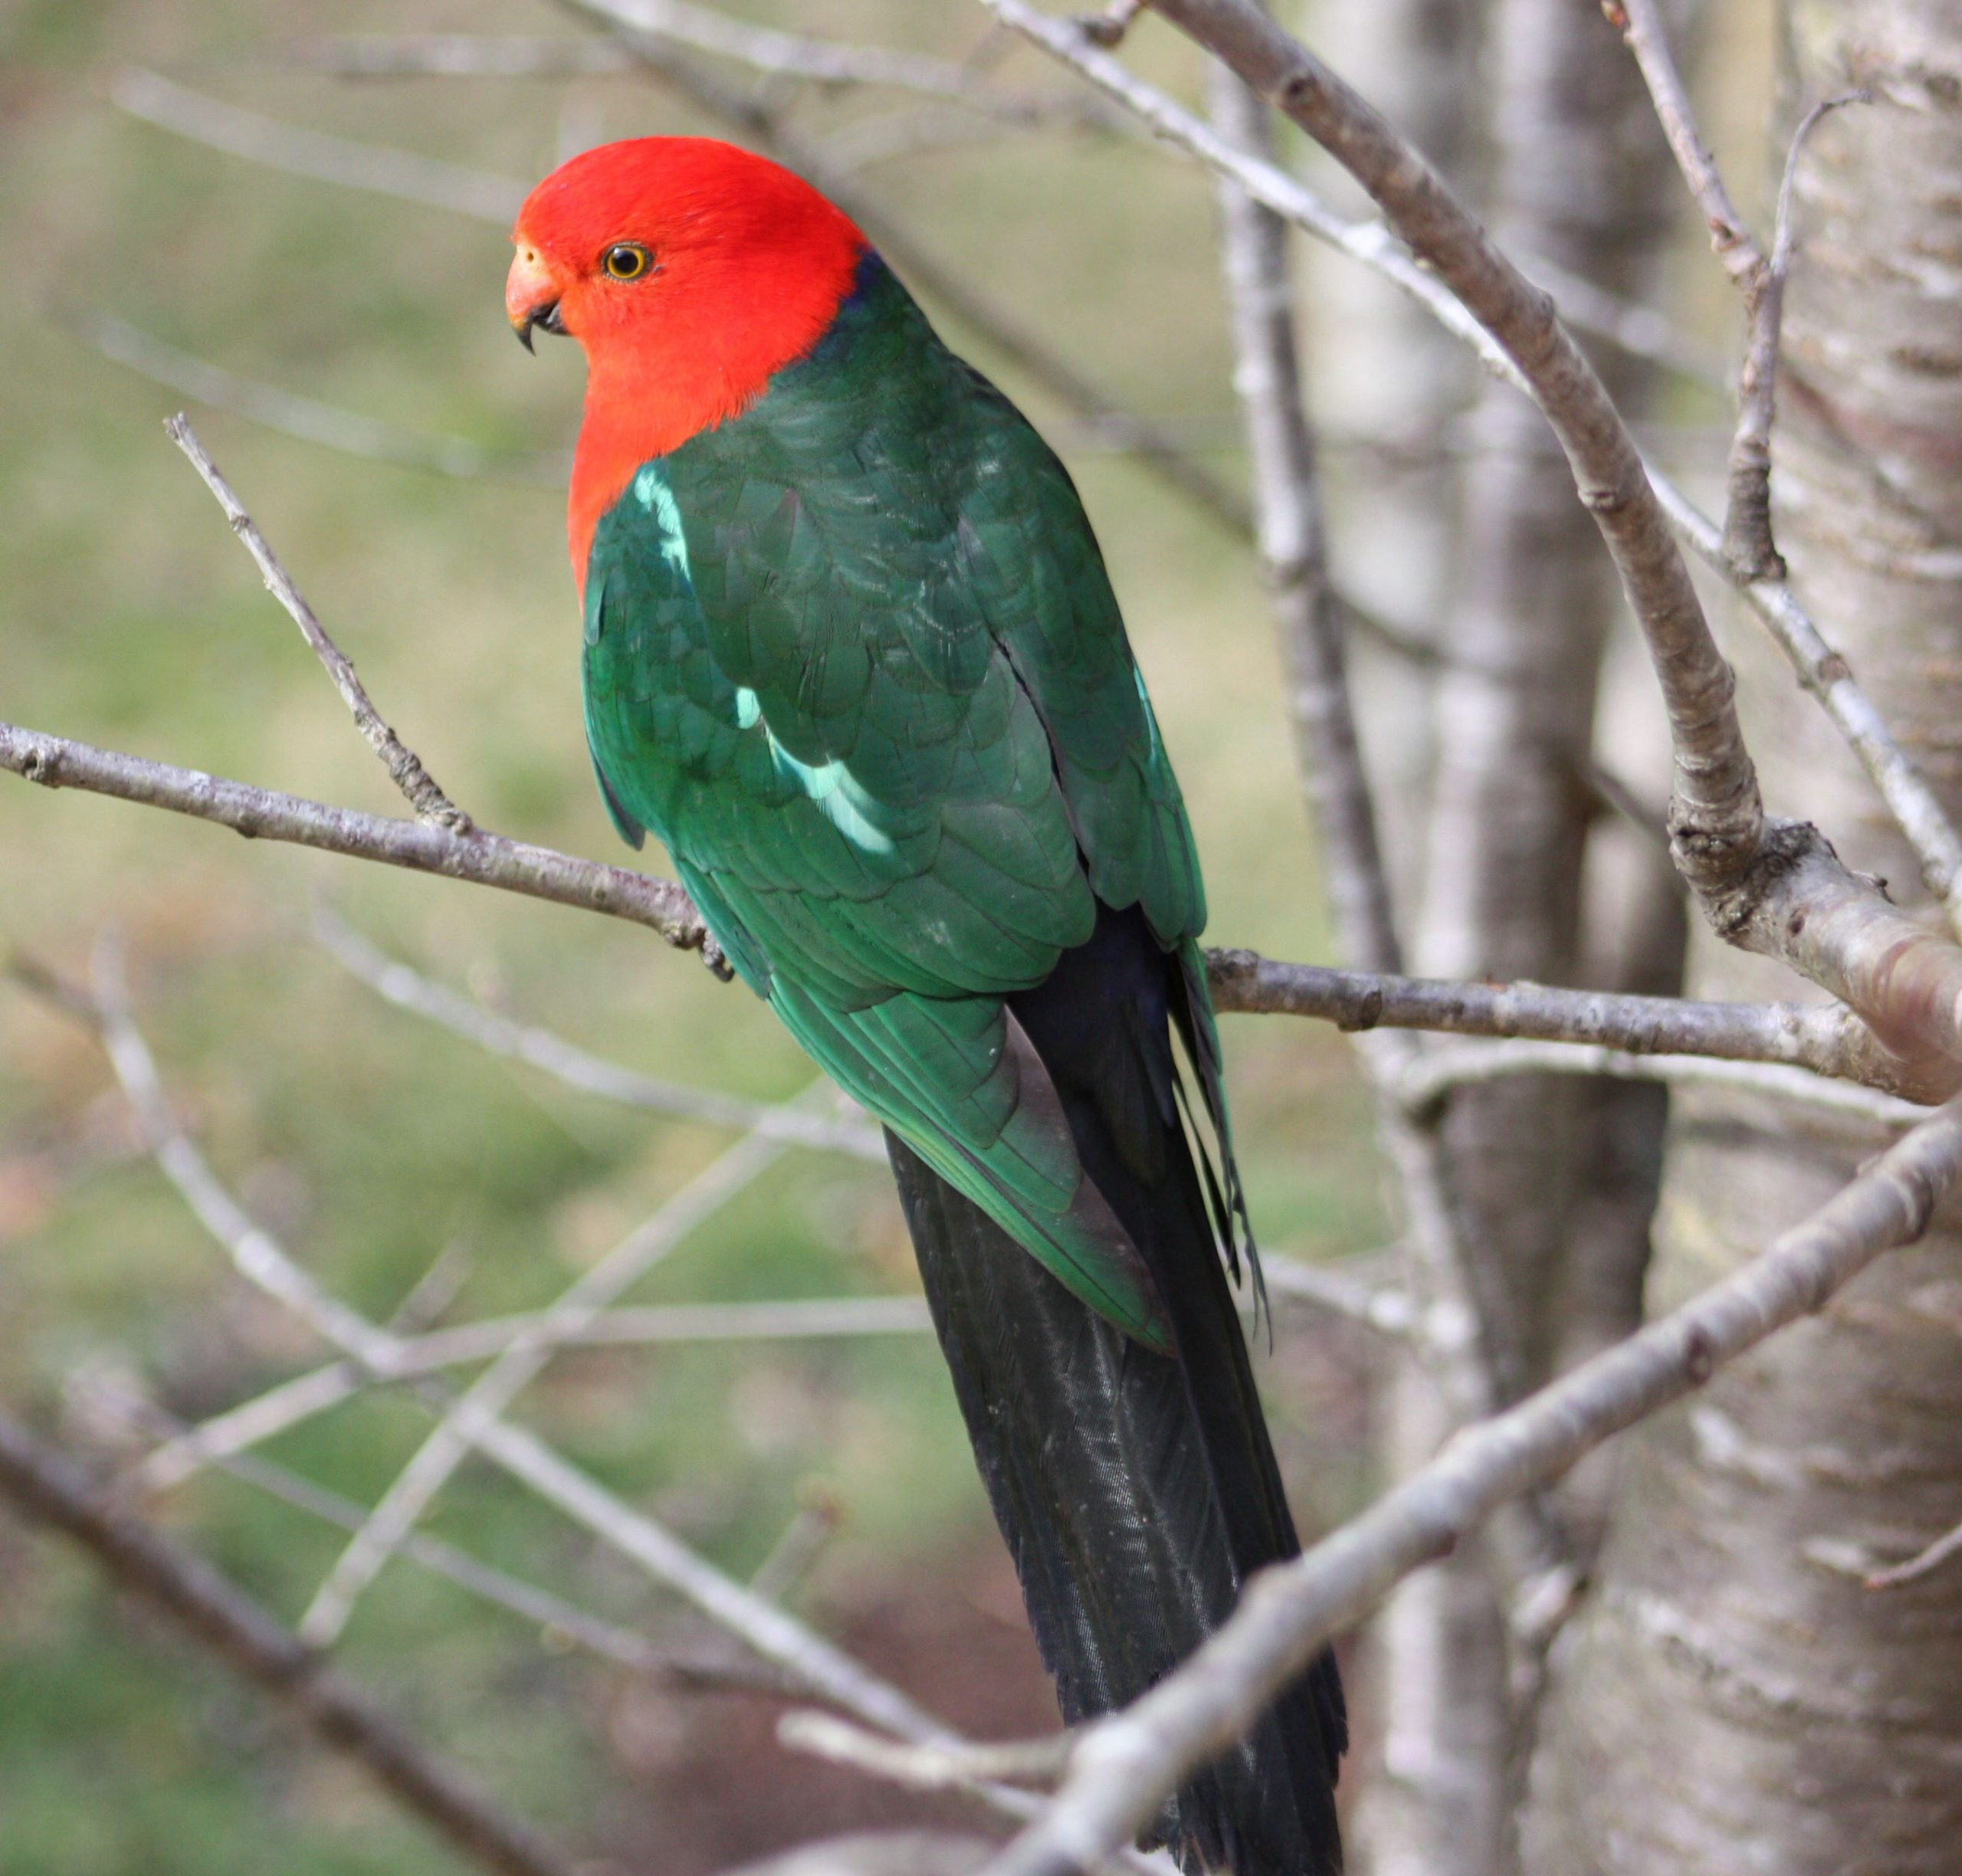 King Parrot just looking